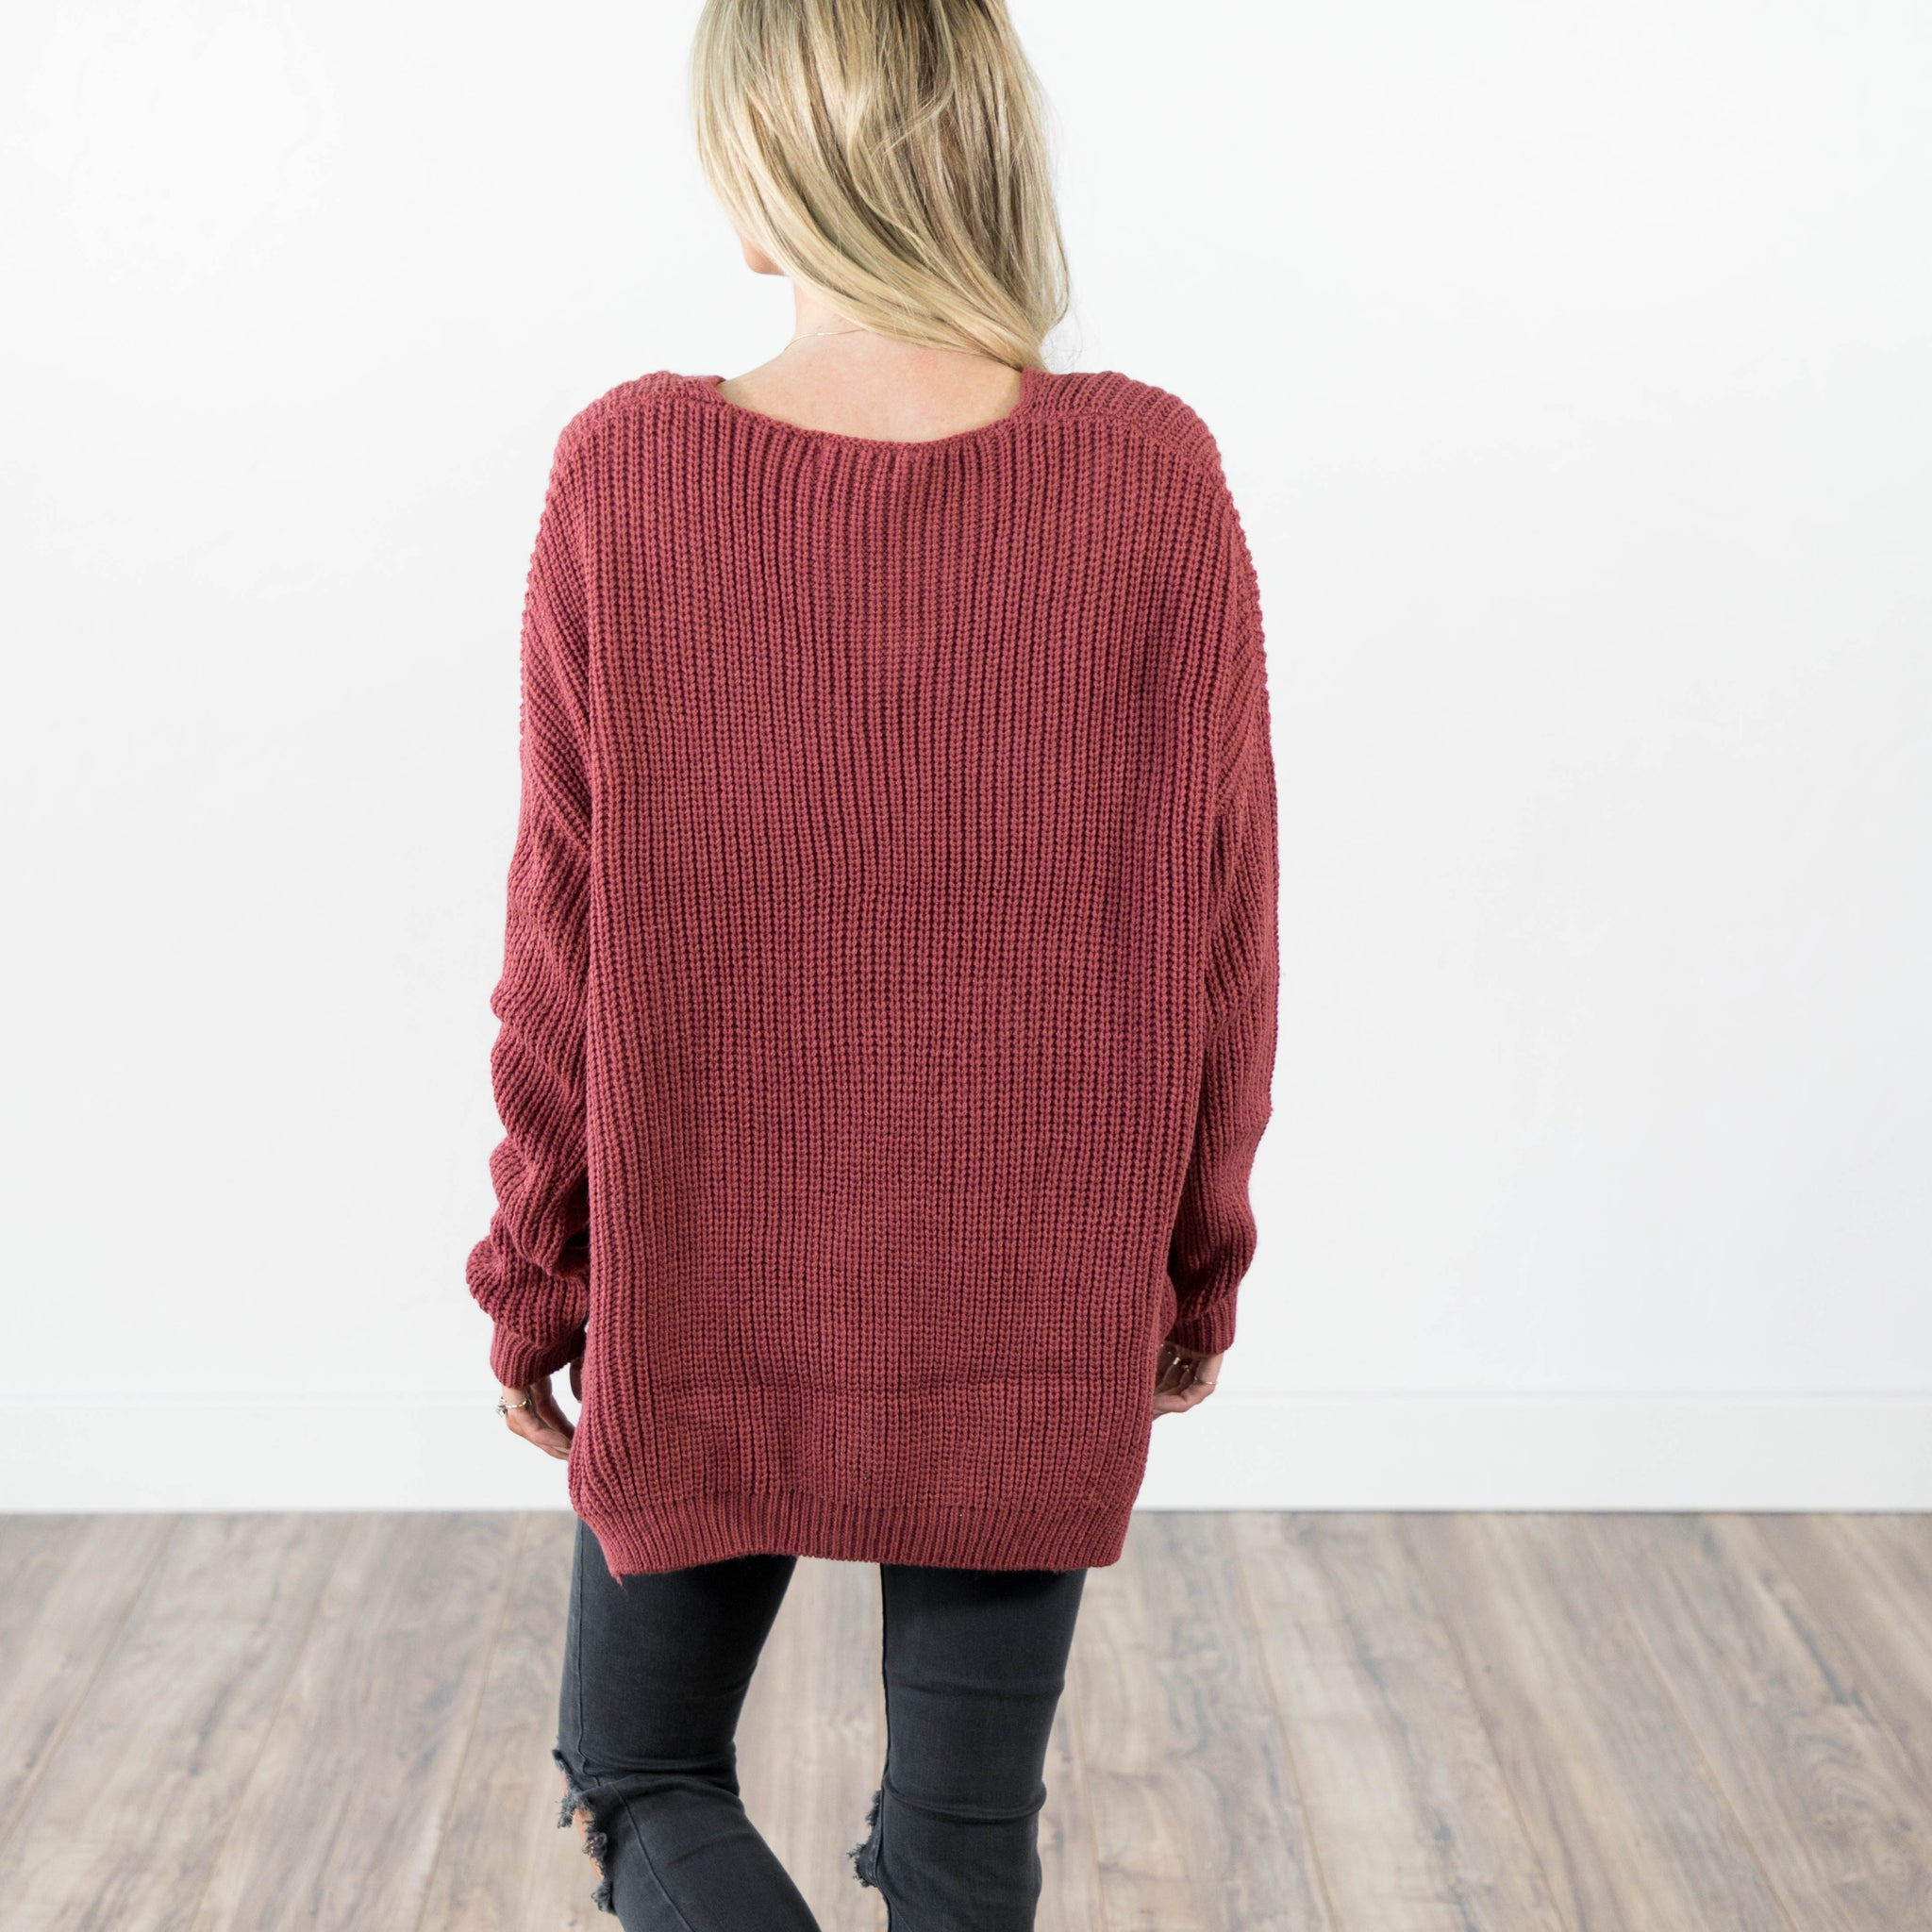 Oversize Knit Sweater in Rose